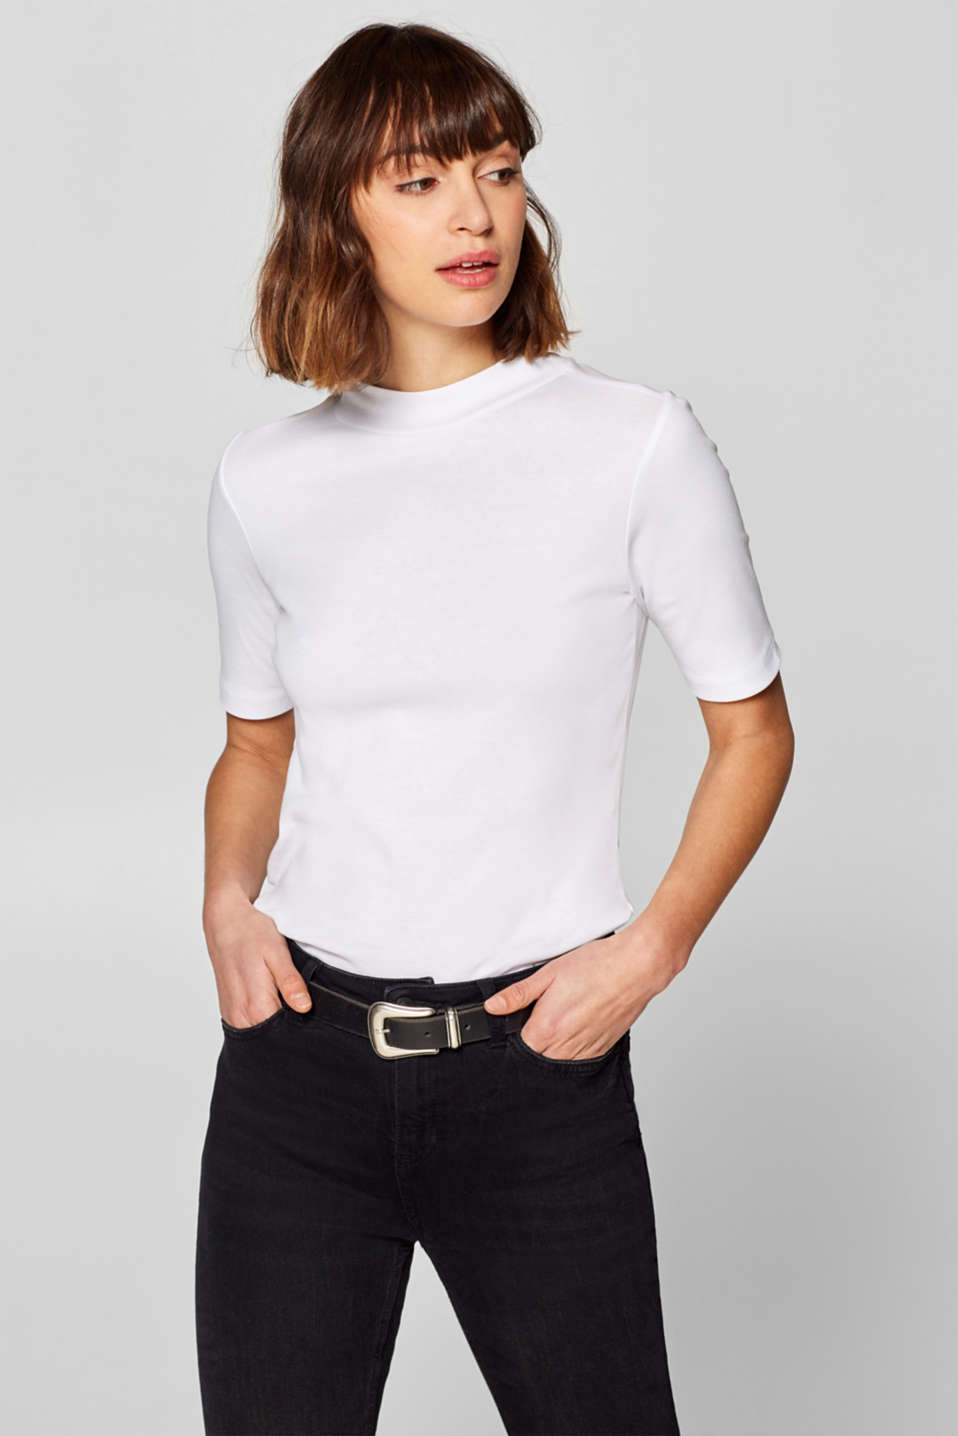 edc - T-shirt with a stand-up collar, 100% cotton